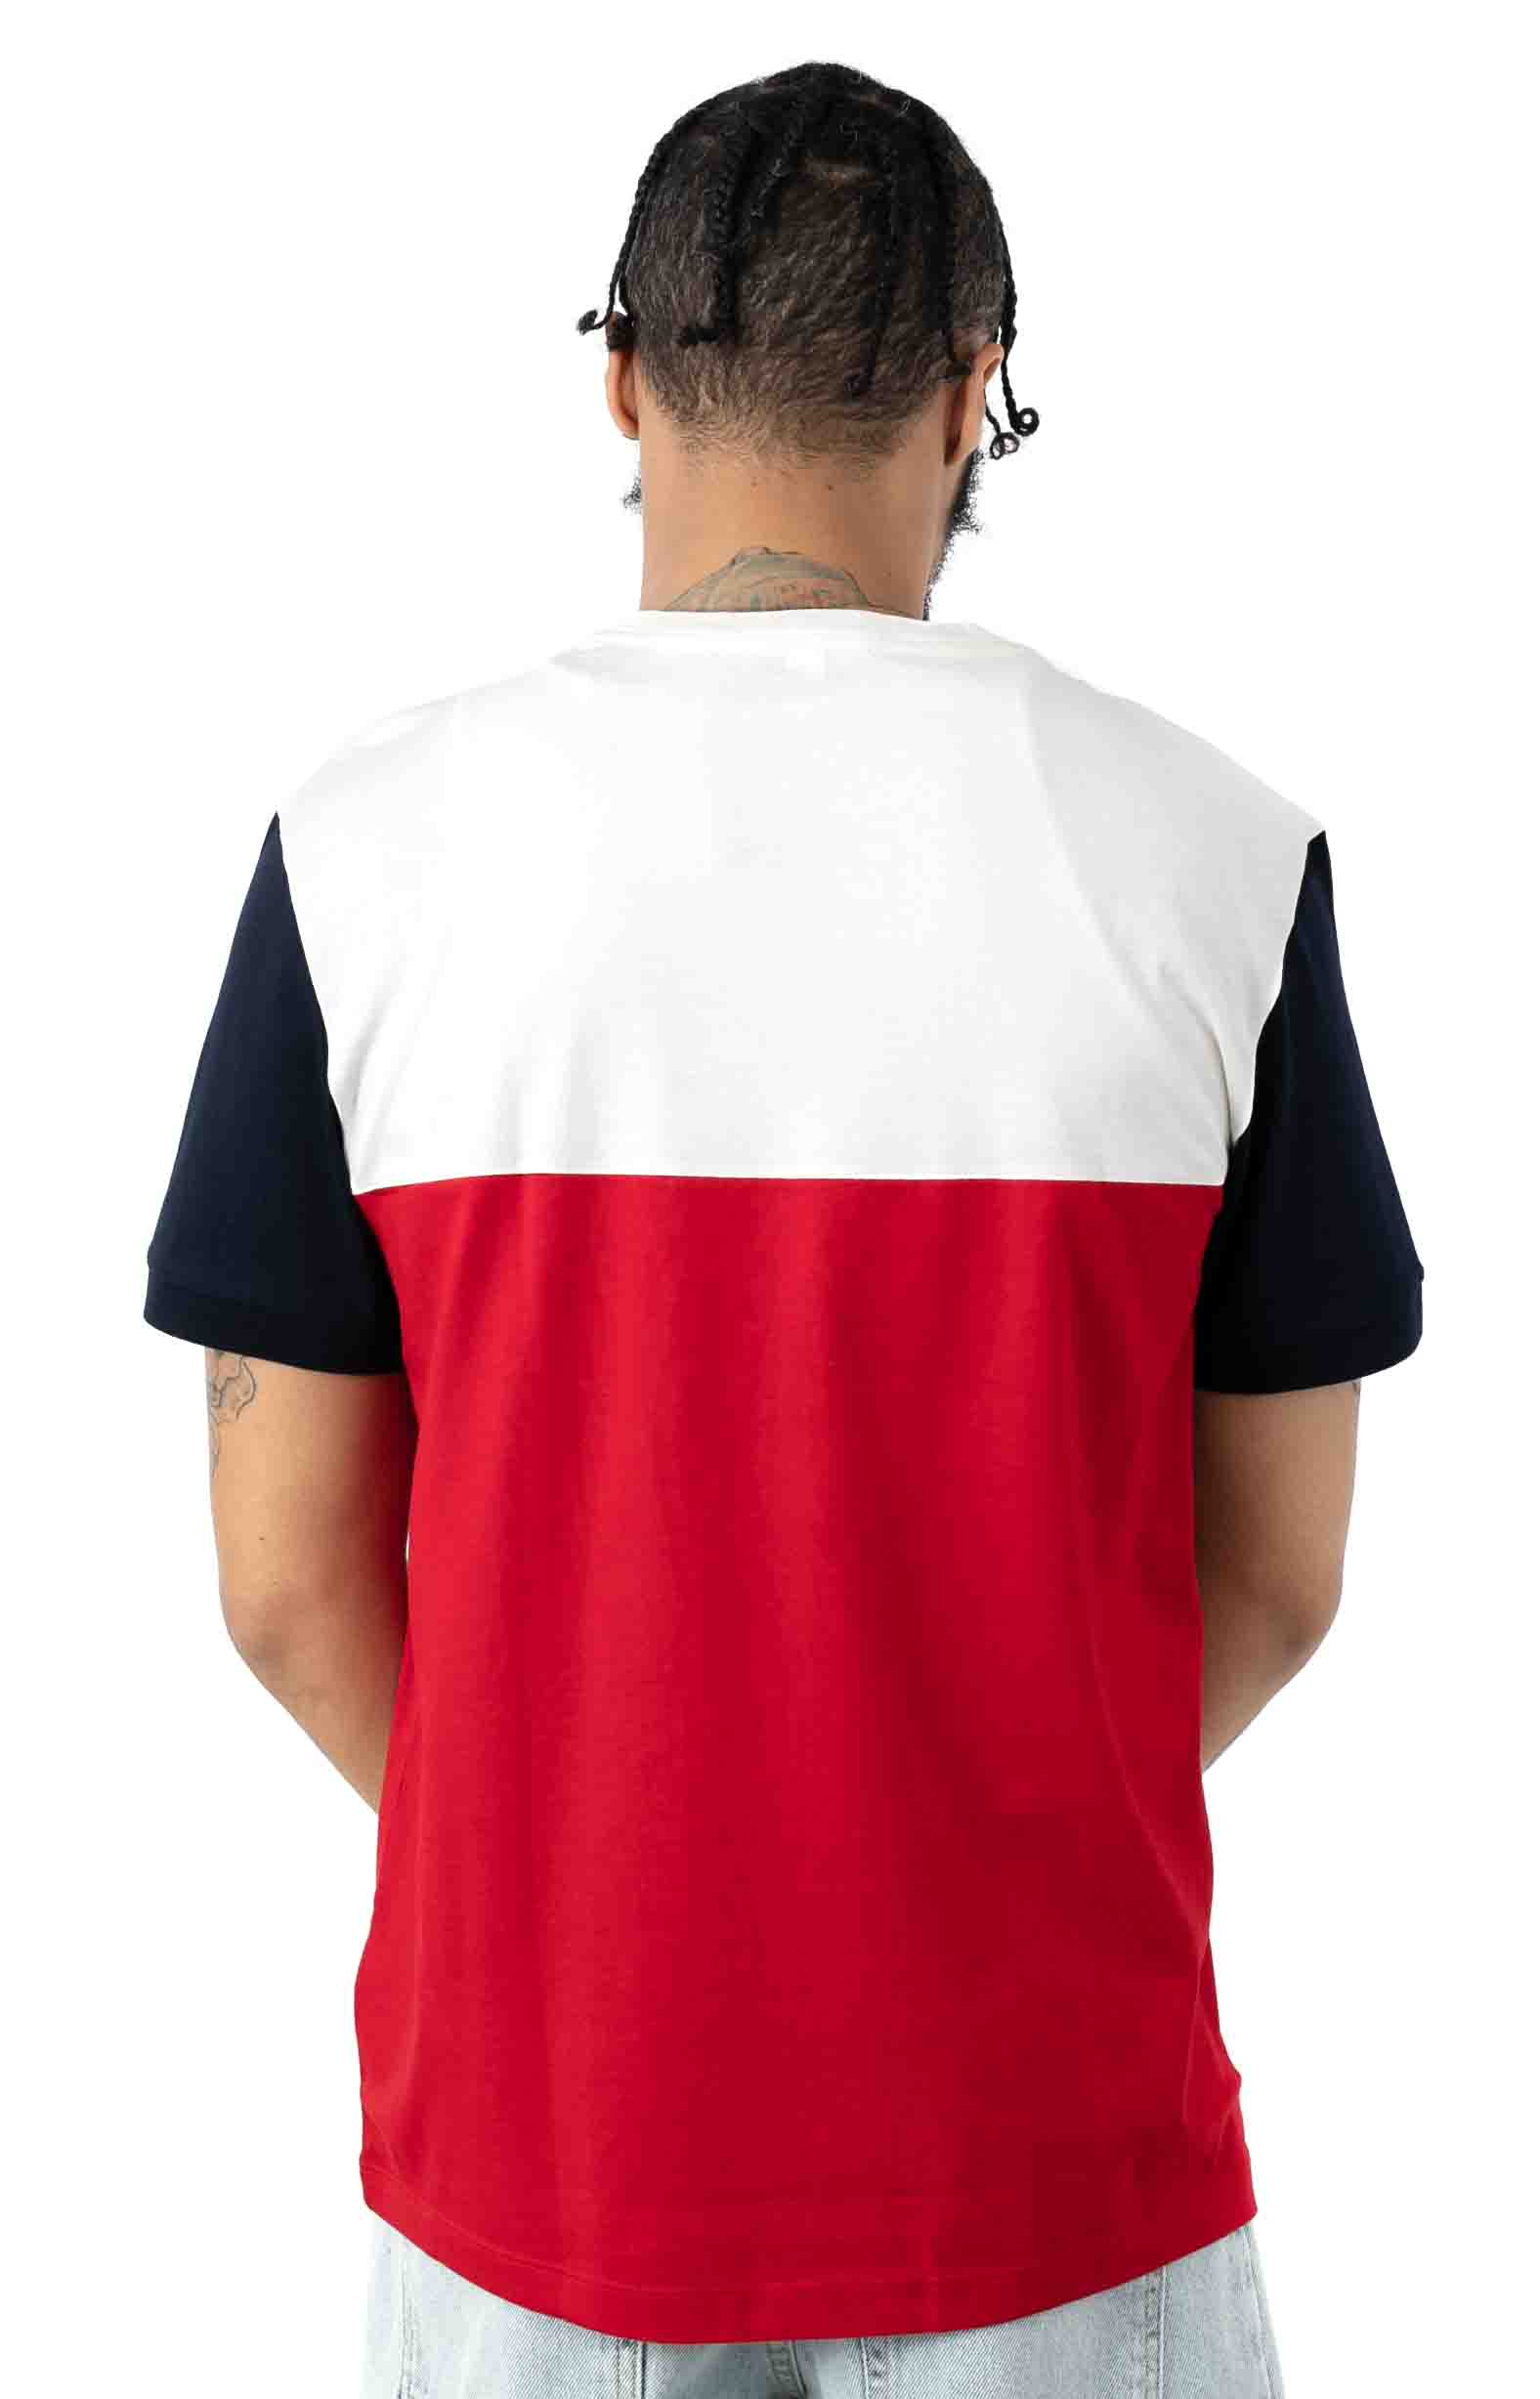 Colorblock Regular Fit Cotton Jersey T-Shirt - Red/White/Navy Blue 3